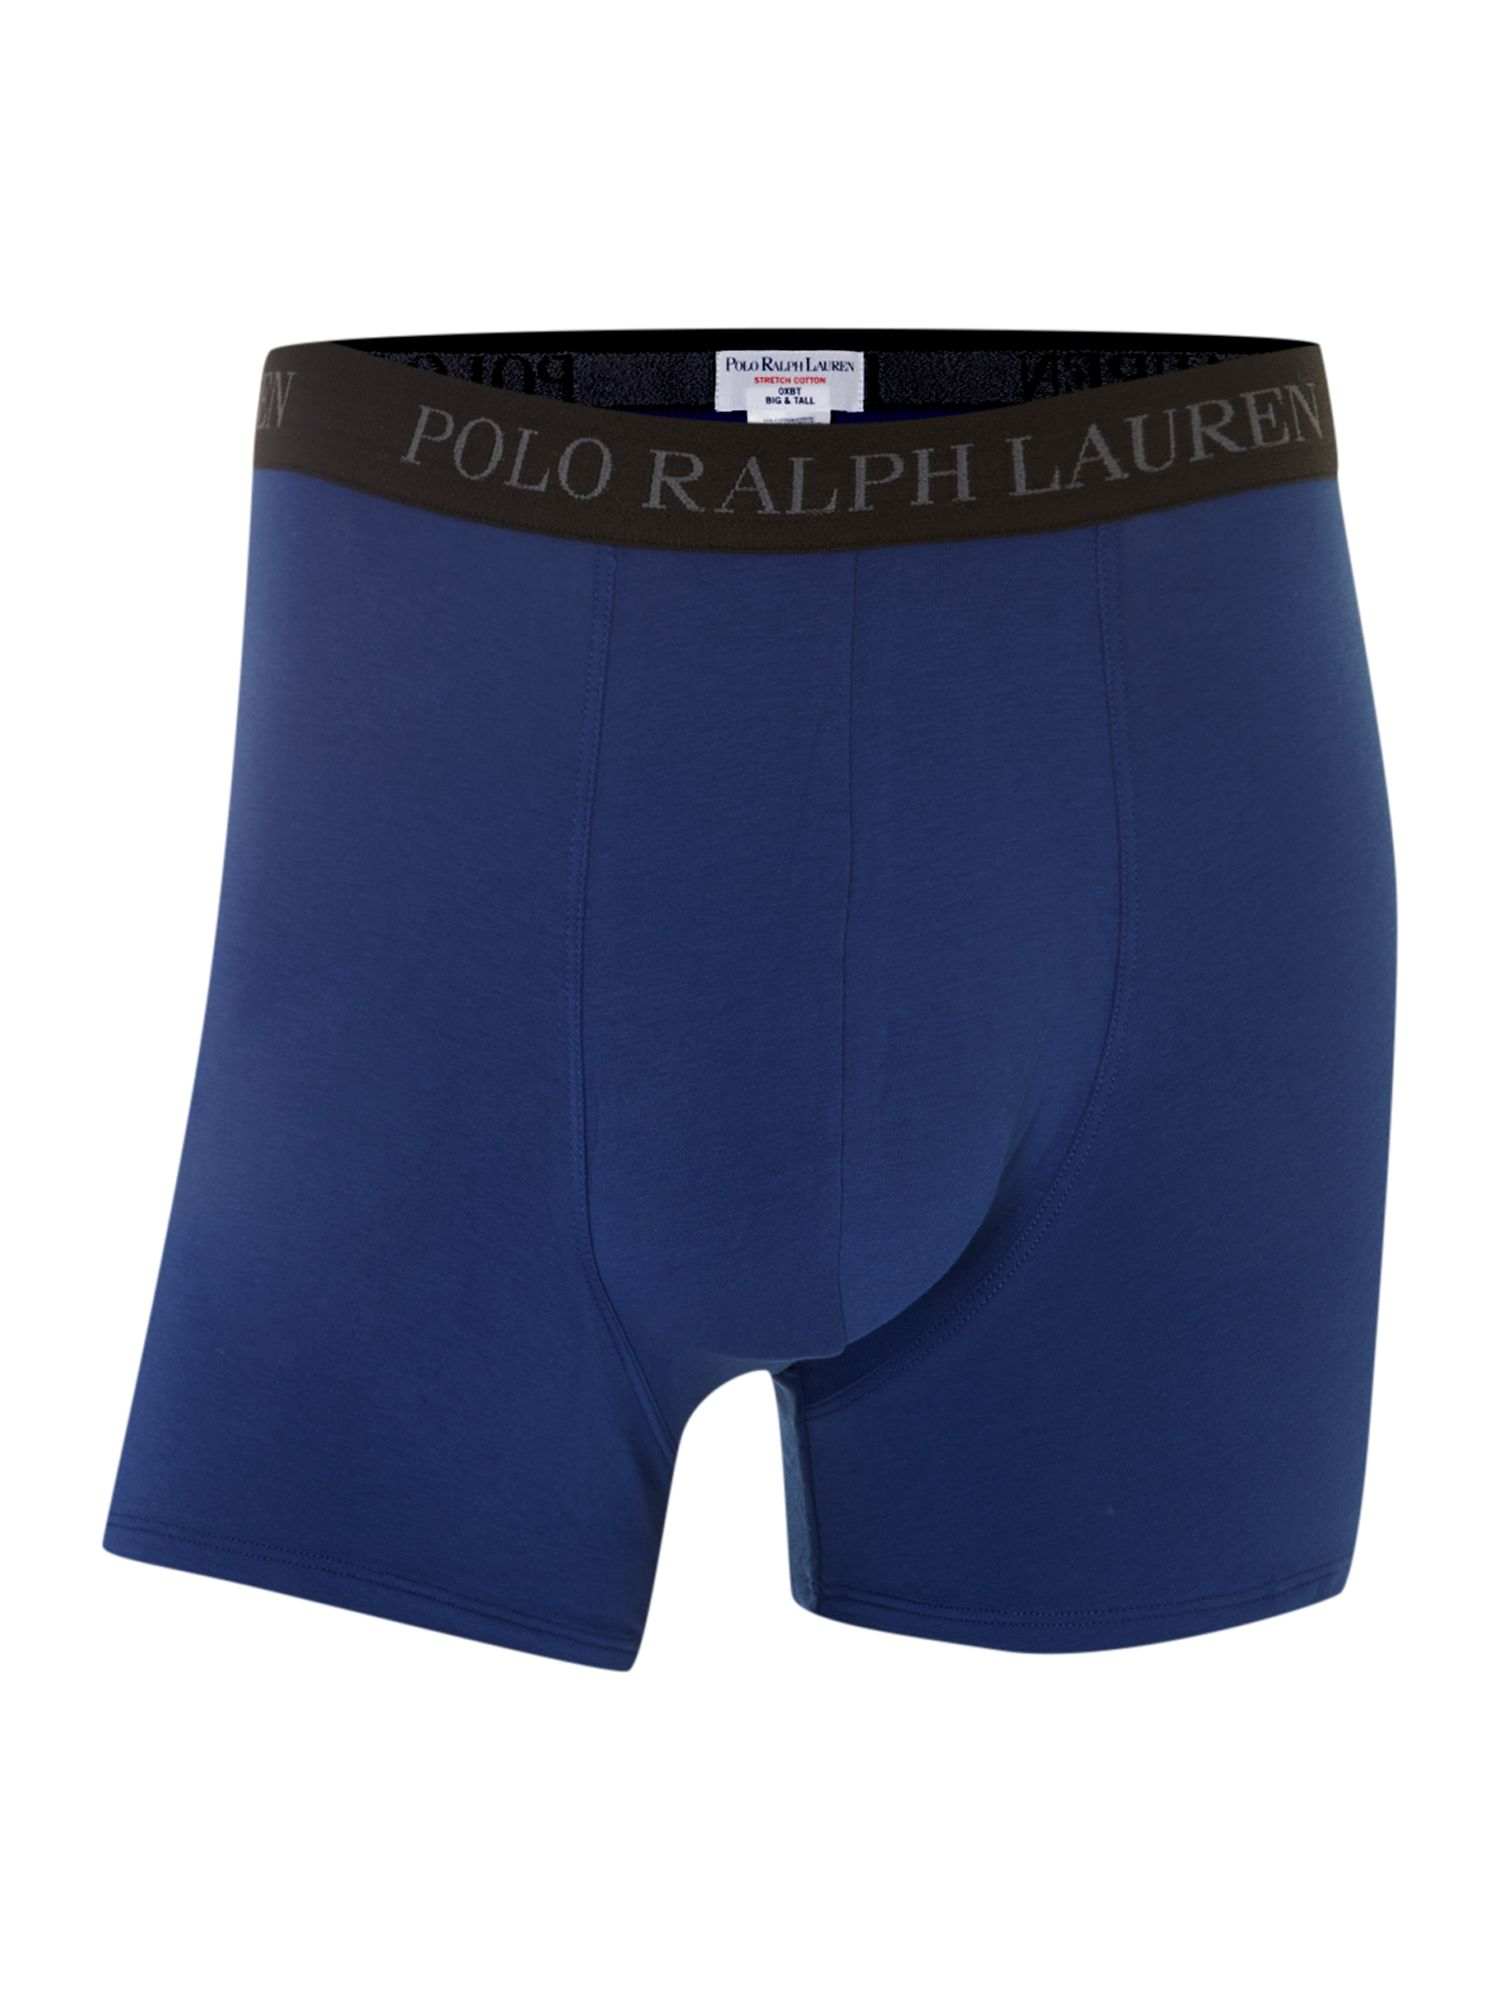 Big And Tall Patio Furniture: Polo Ralph Lauren Big And Tall Underwear Trunk In Blue For